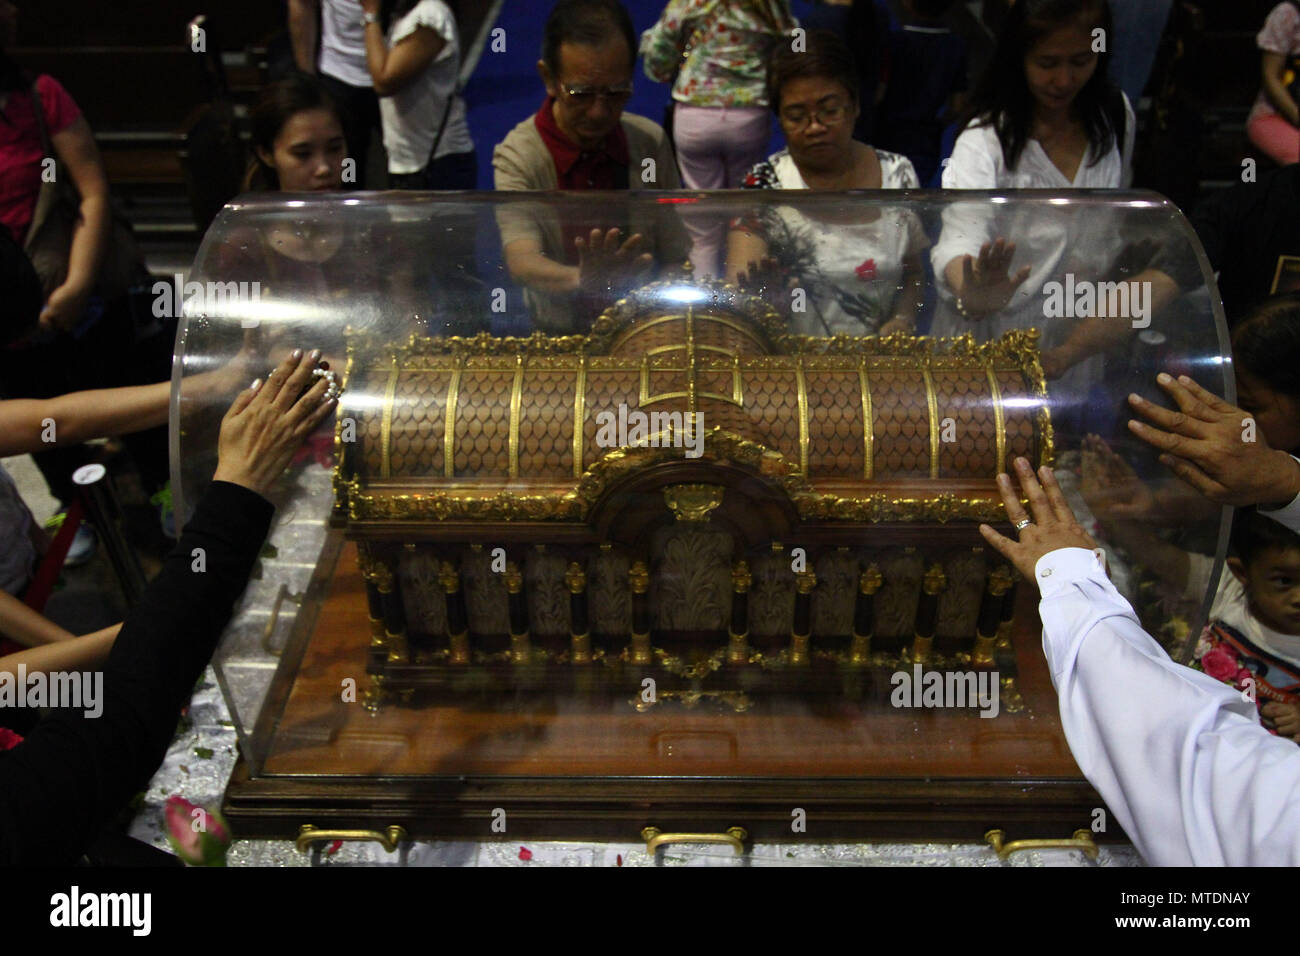 Catholic devotees seen touching the Shrine of Saint Therese of the Child Jesus in New Port City in Pasay, Metro Manila, for the veneration of  the holy relic of Saint Therese of Lisieux. The reliquary containing the bones of Saint Therese has been on a nation wide tour and is on its last few days in Manila before heading back to France. - Stock Image